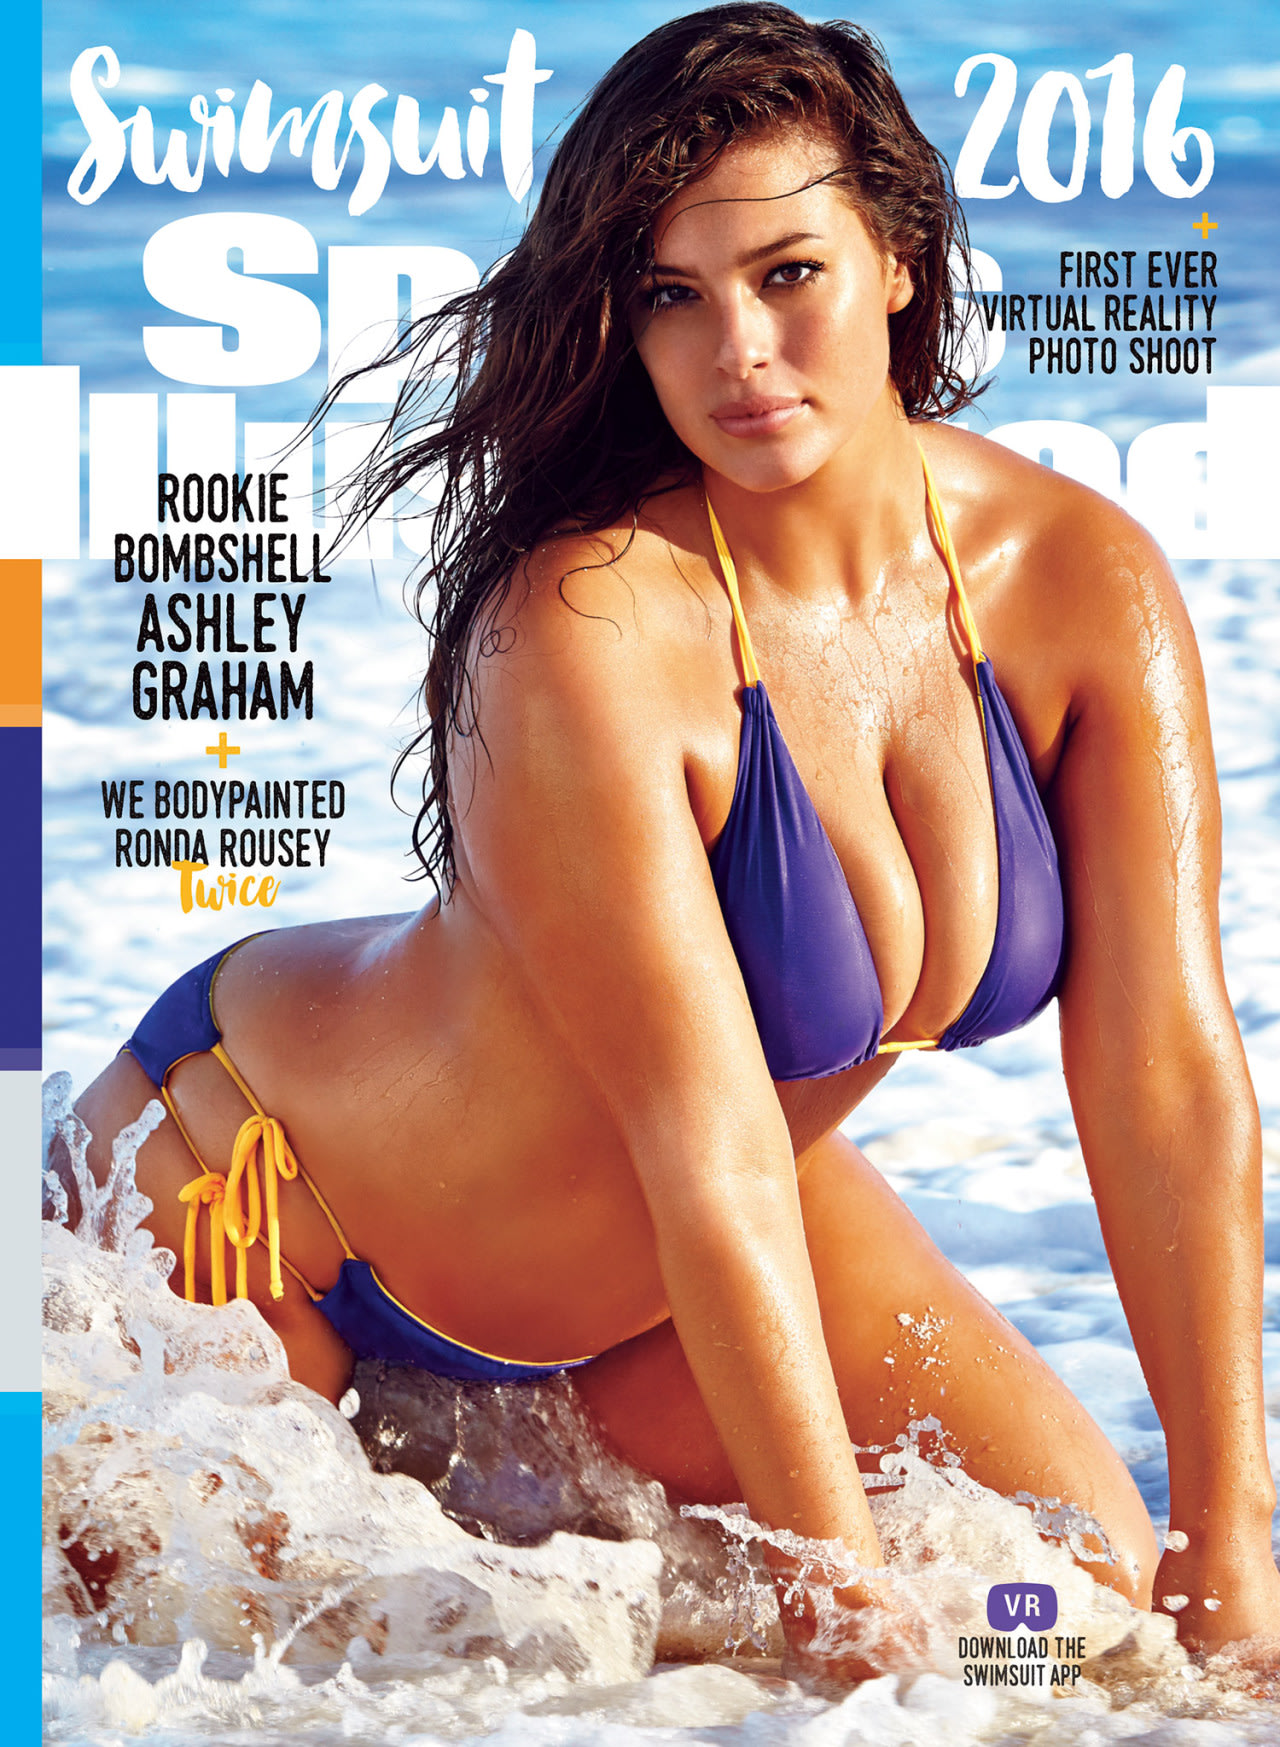 Sports Illustrated Unveils 3 Swimsuit Issue Covers: Ashley Graham, Ronda Rousey, and Hailey Clauson